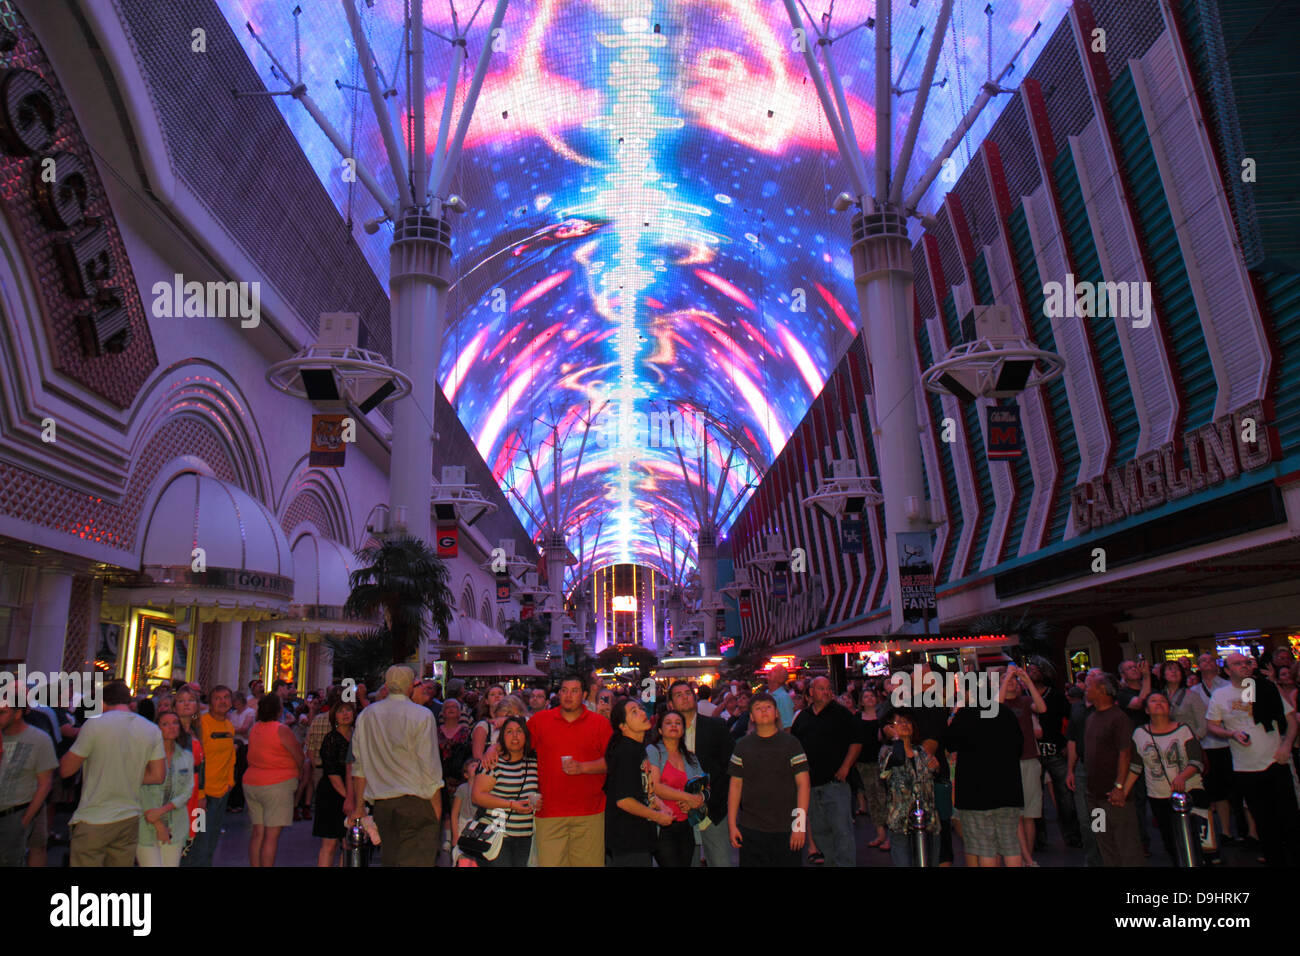 Nevada Las Vegas Downtown Fremont Street Experience pedestrian mall Viva Vision canopy light show night nightlife audience & Nevada Las Vegas Downtown Fremont Street Experience pedestrian ...